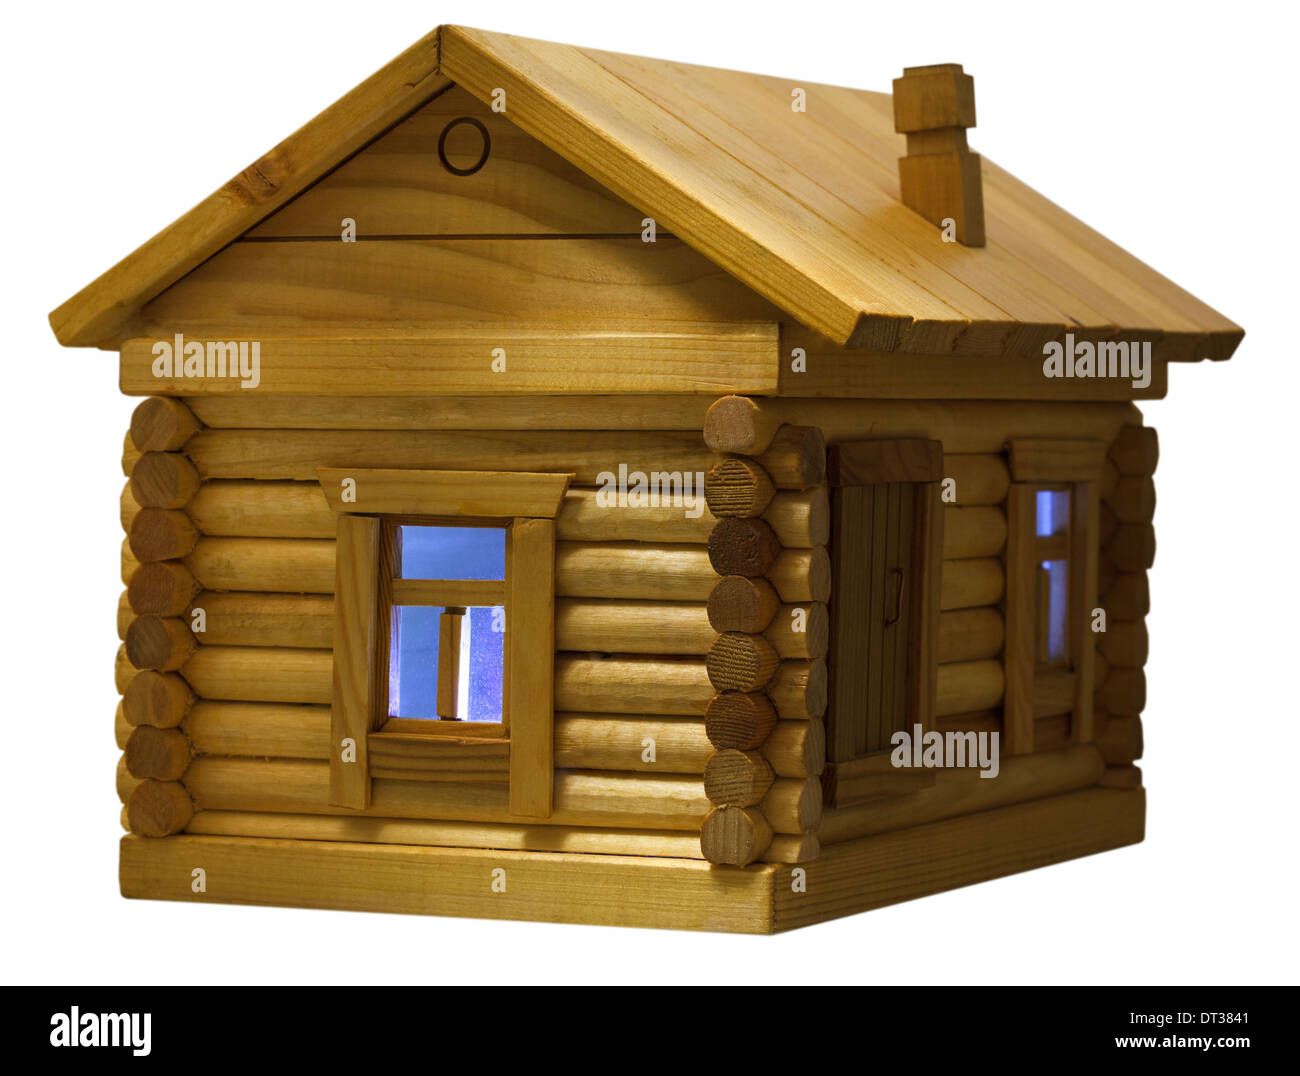 blue light in window of model of village wooden log house in evening isolated on white background - Stock Image